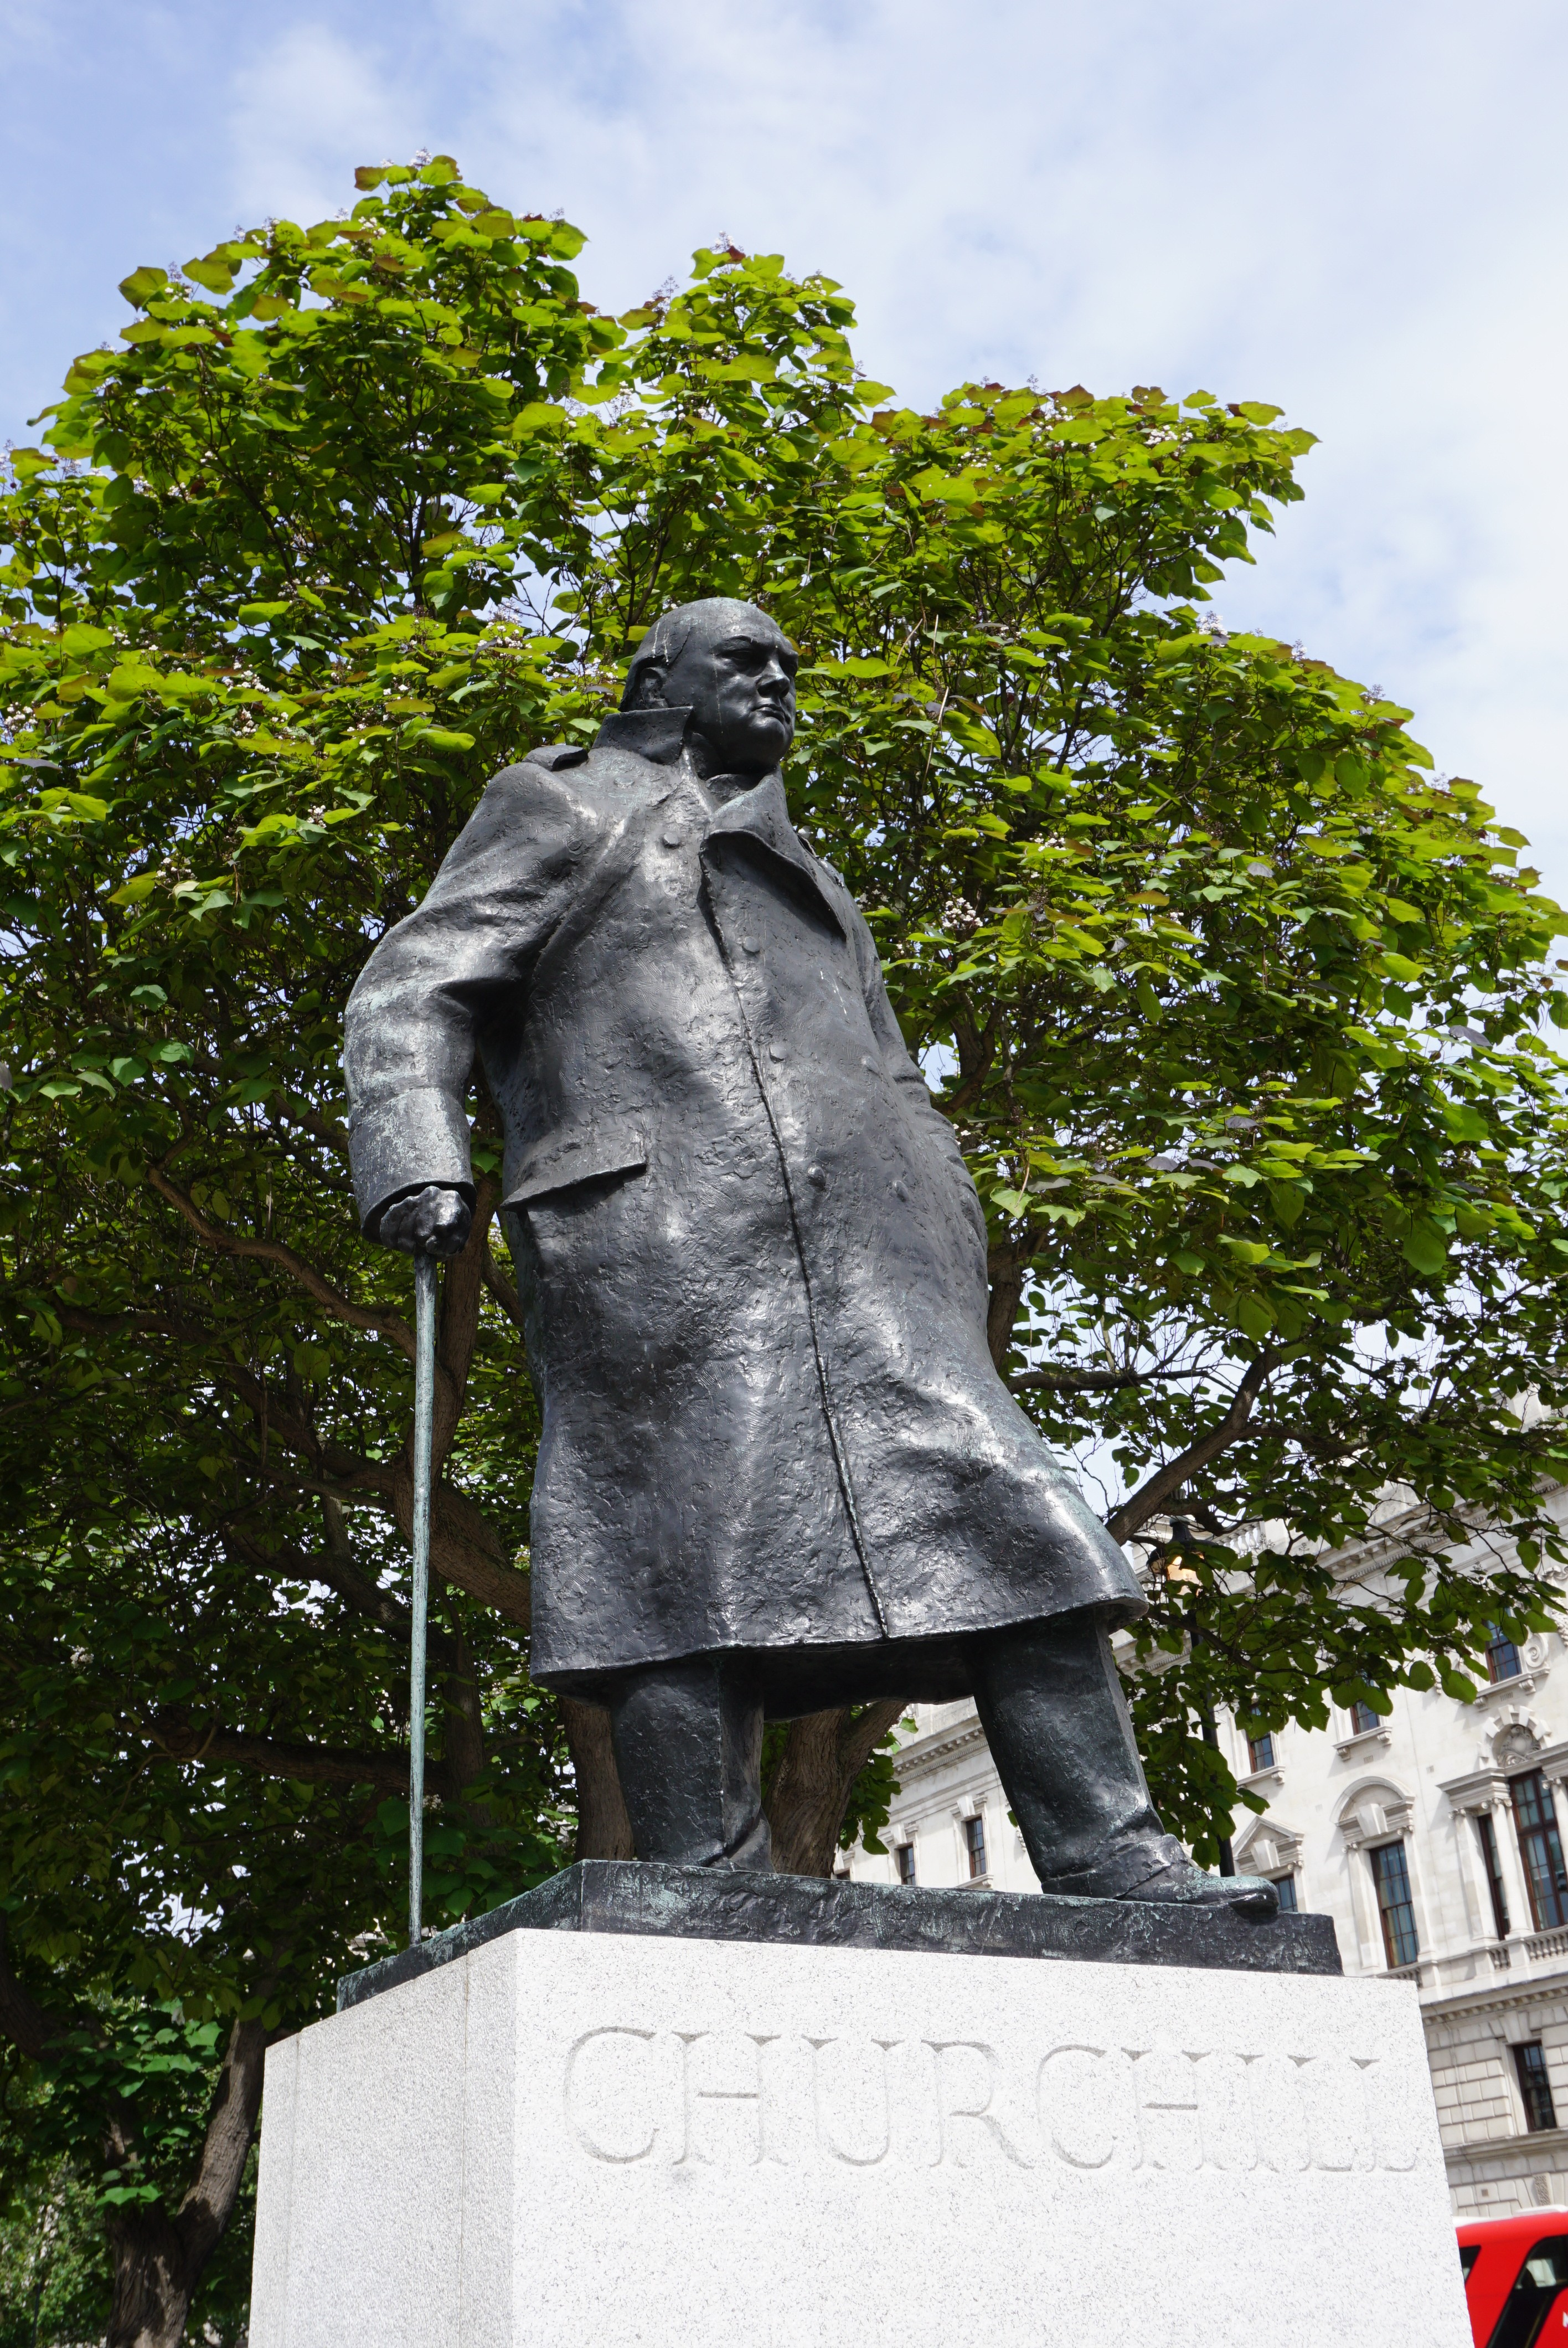 There's a slight electric current that passes through the head of the statue, per Churchill's dying wishes, so that pigeons wouldn't poop on his head. Let the man have his dignity.